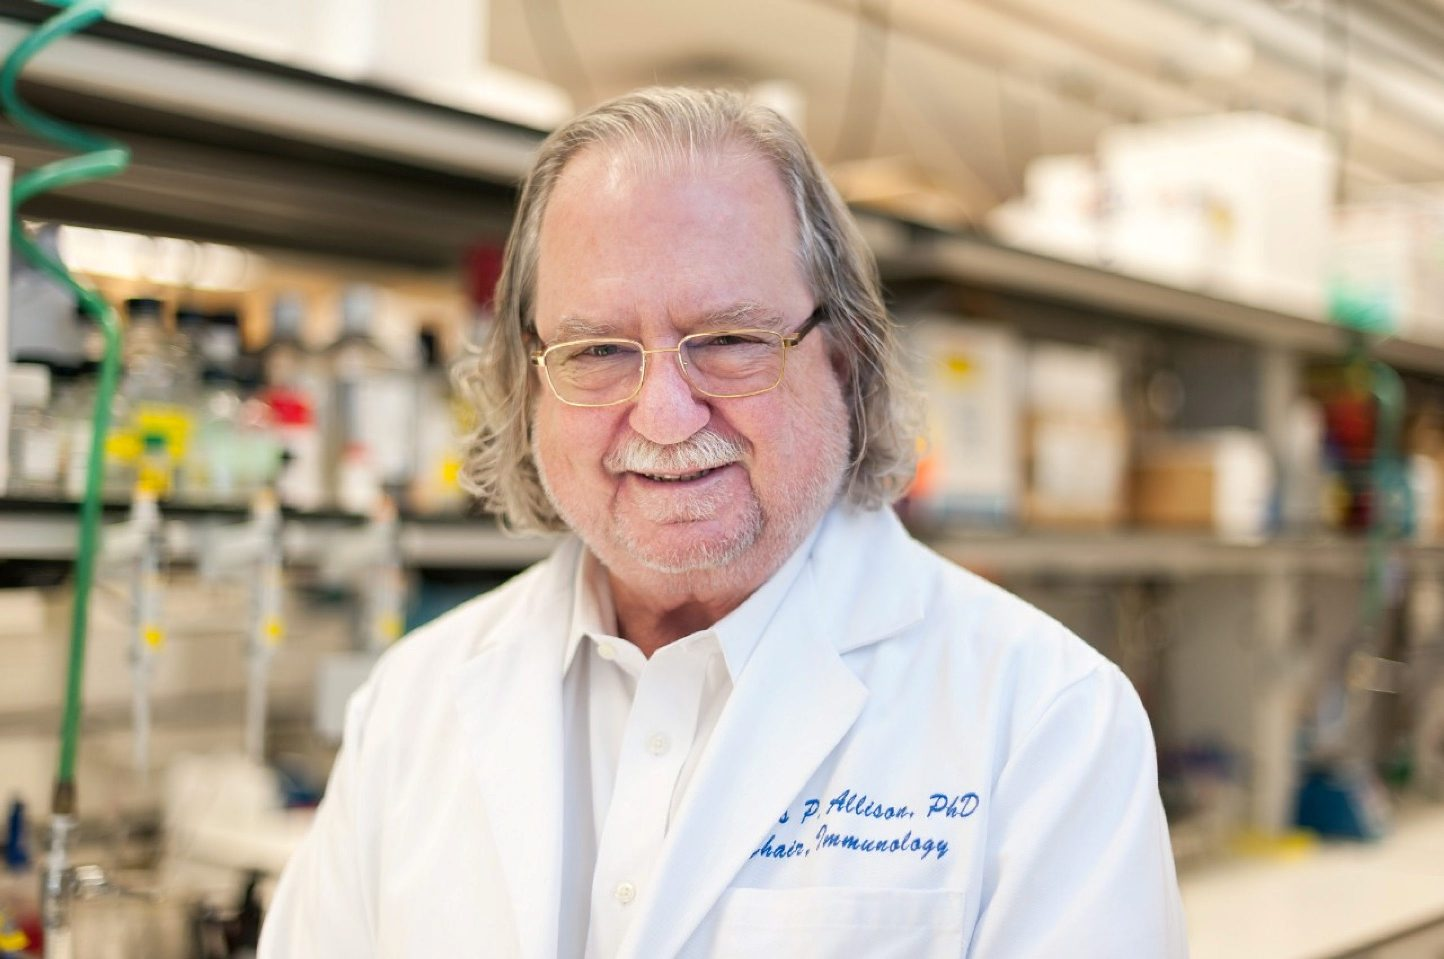 Ph.D. James P. Allison of MD Anderson Cancer Center at The University of Texas is seen in this picture obtained from MD Anderson Cancer Center at The University of Texas on October 1, 2018. MD Anderson Cancer Center at The University of Texas/Handout via REUTERS ATTENTION EDITORS - THIS IMAGE WAS PROVIDED BY A THIRD PARTY. NO RESALES. NO ARCHIVES.